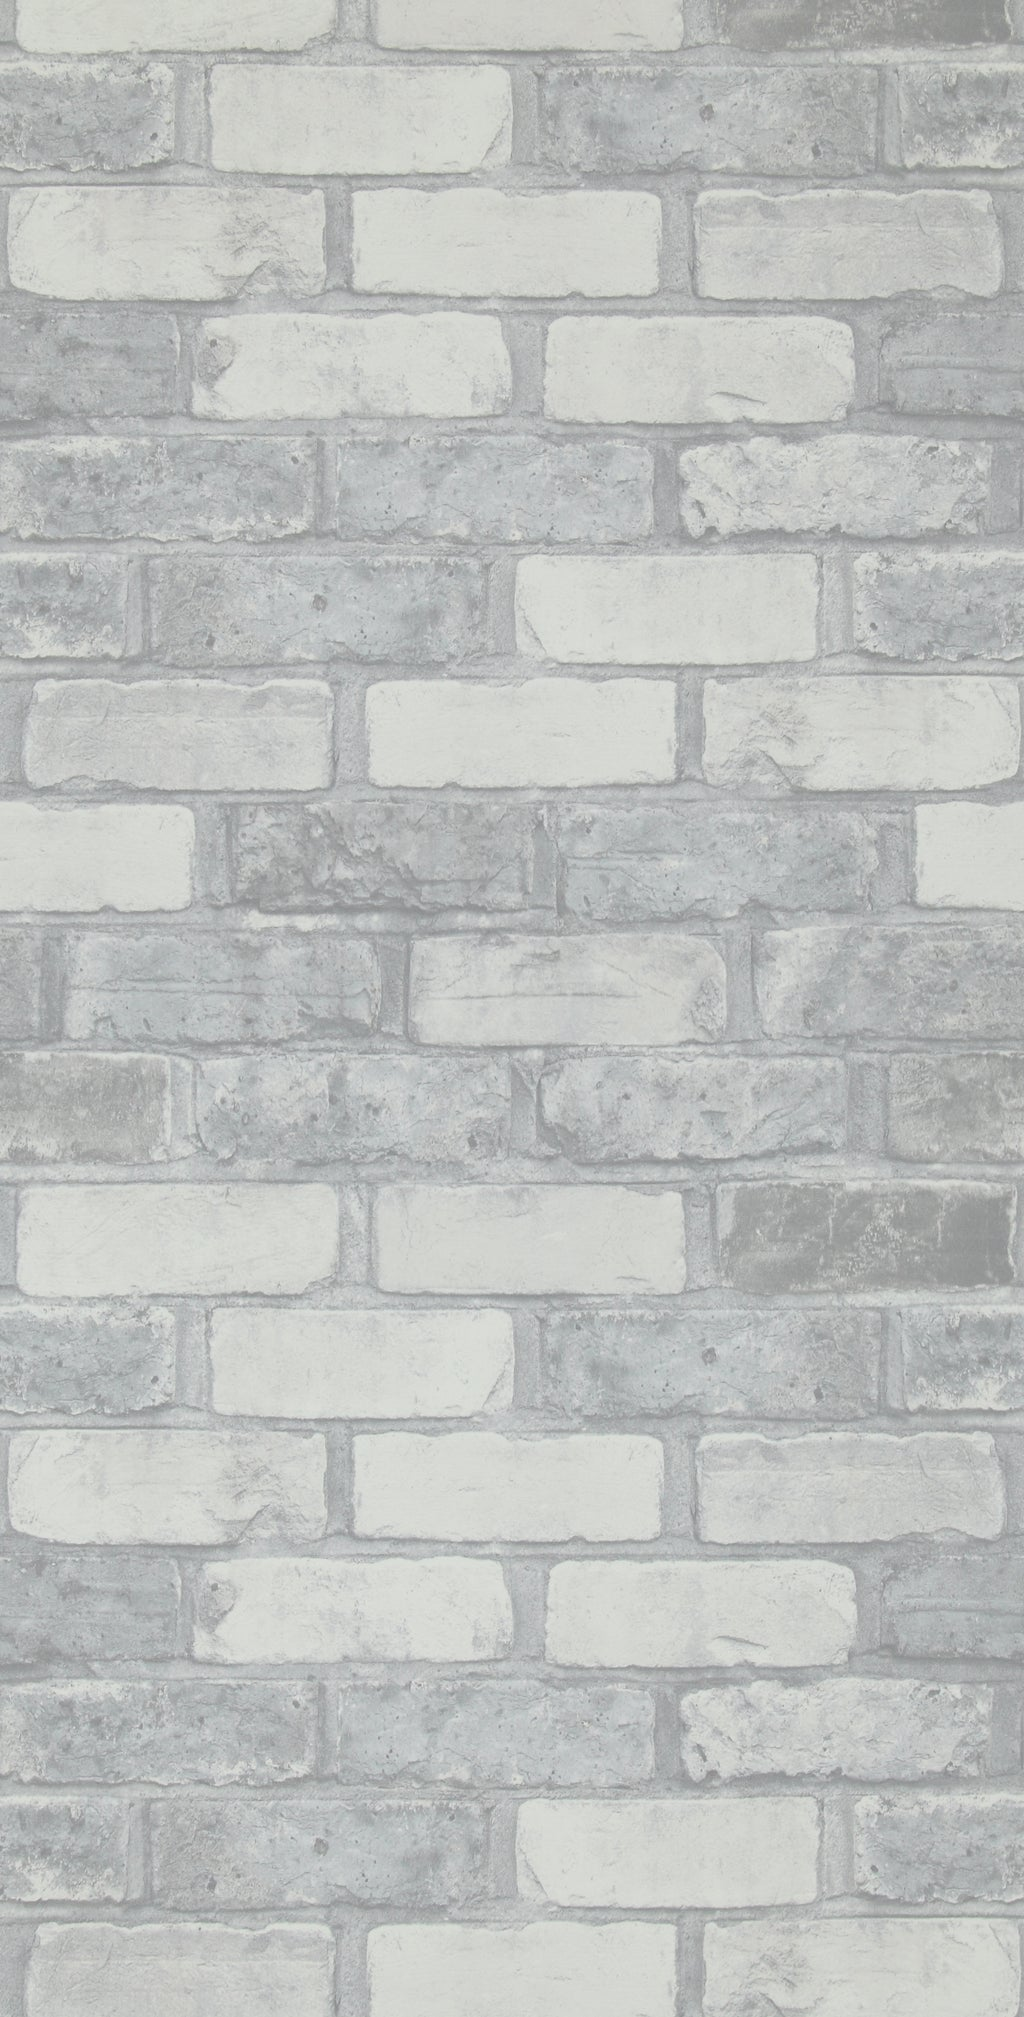 Grey Faux Brick Wallpaper R2588. Grey Wallpaper. Brick wallpaper. Faux wallpaper. Home wallpaper. Modern wallpaper. Contemporary wallpaper. Geometric wallpaper.